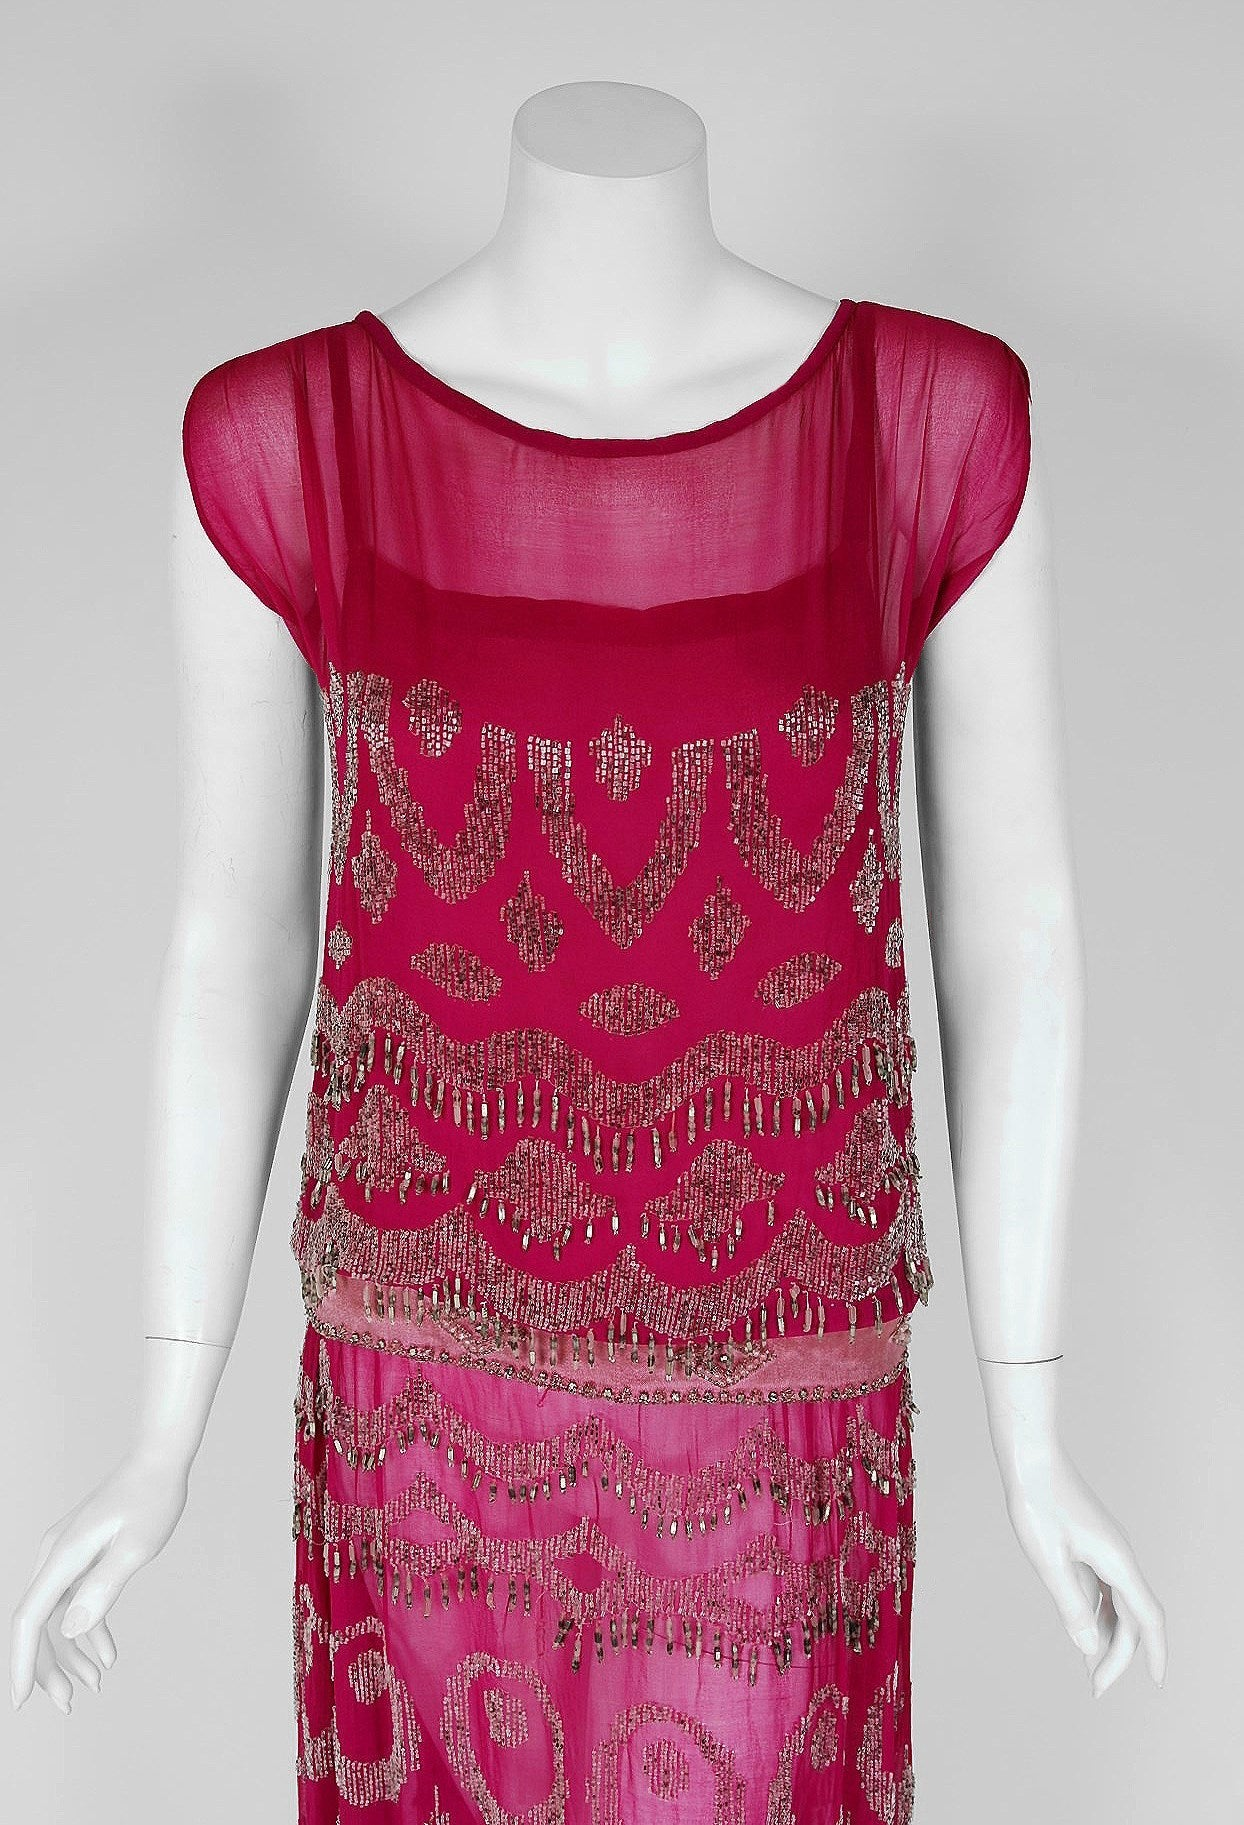 Breathtaking 1920's French designer silk-chiffon evening dance dress. The ethereal magenta-pink color palette touches a deep chord in our collective aesthetic consciousness. As fashion lovers, we never tire from antique beadwork & sparkle; they